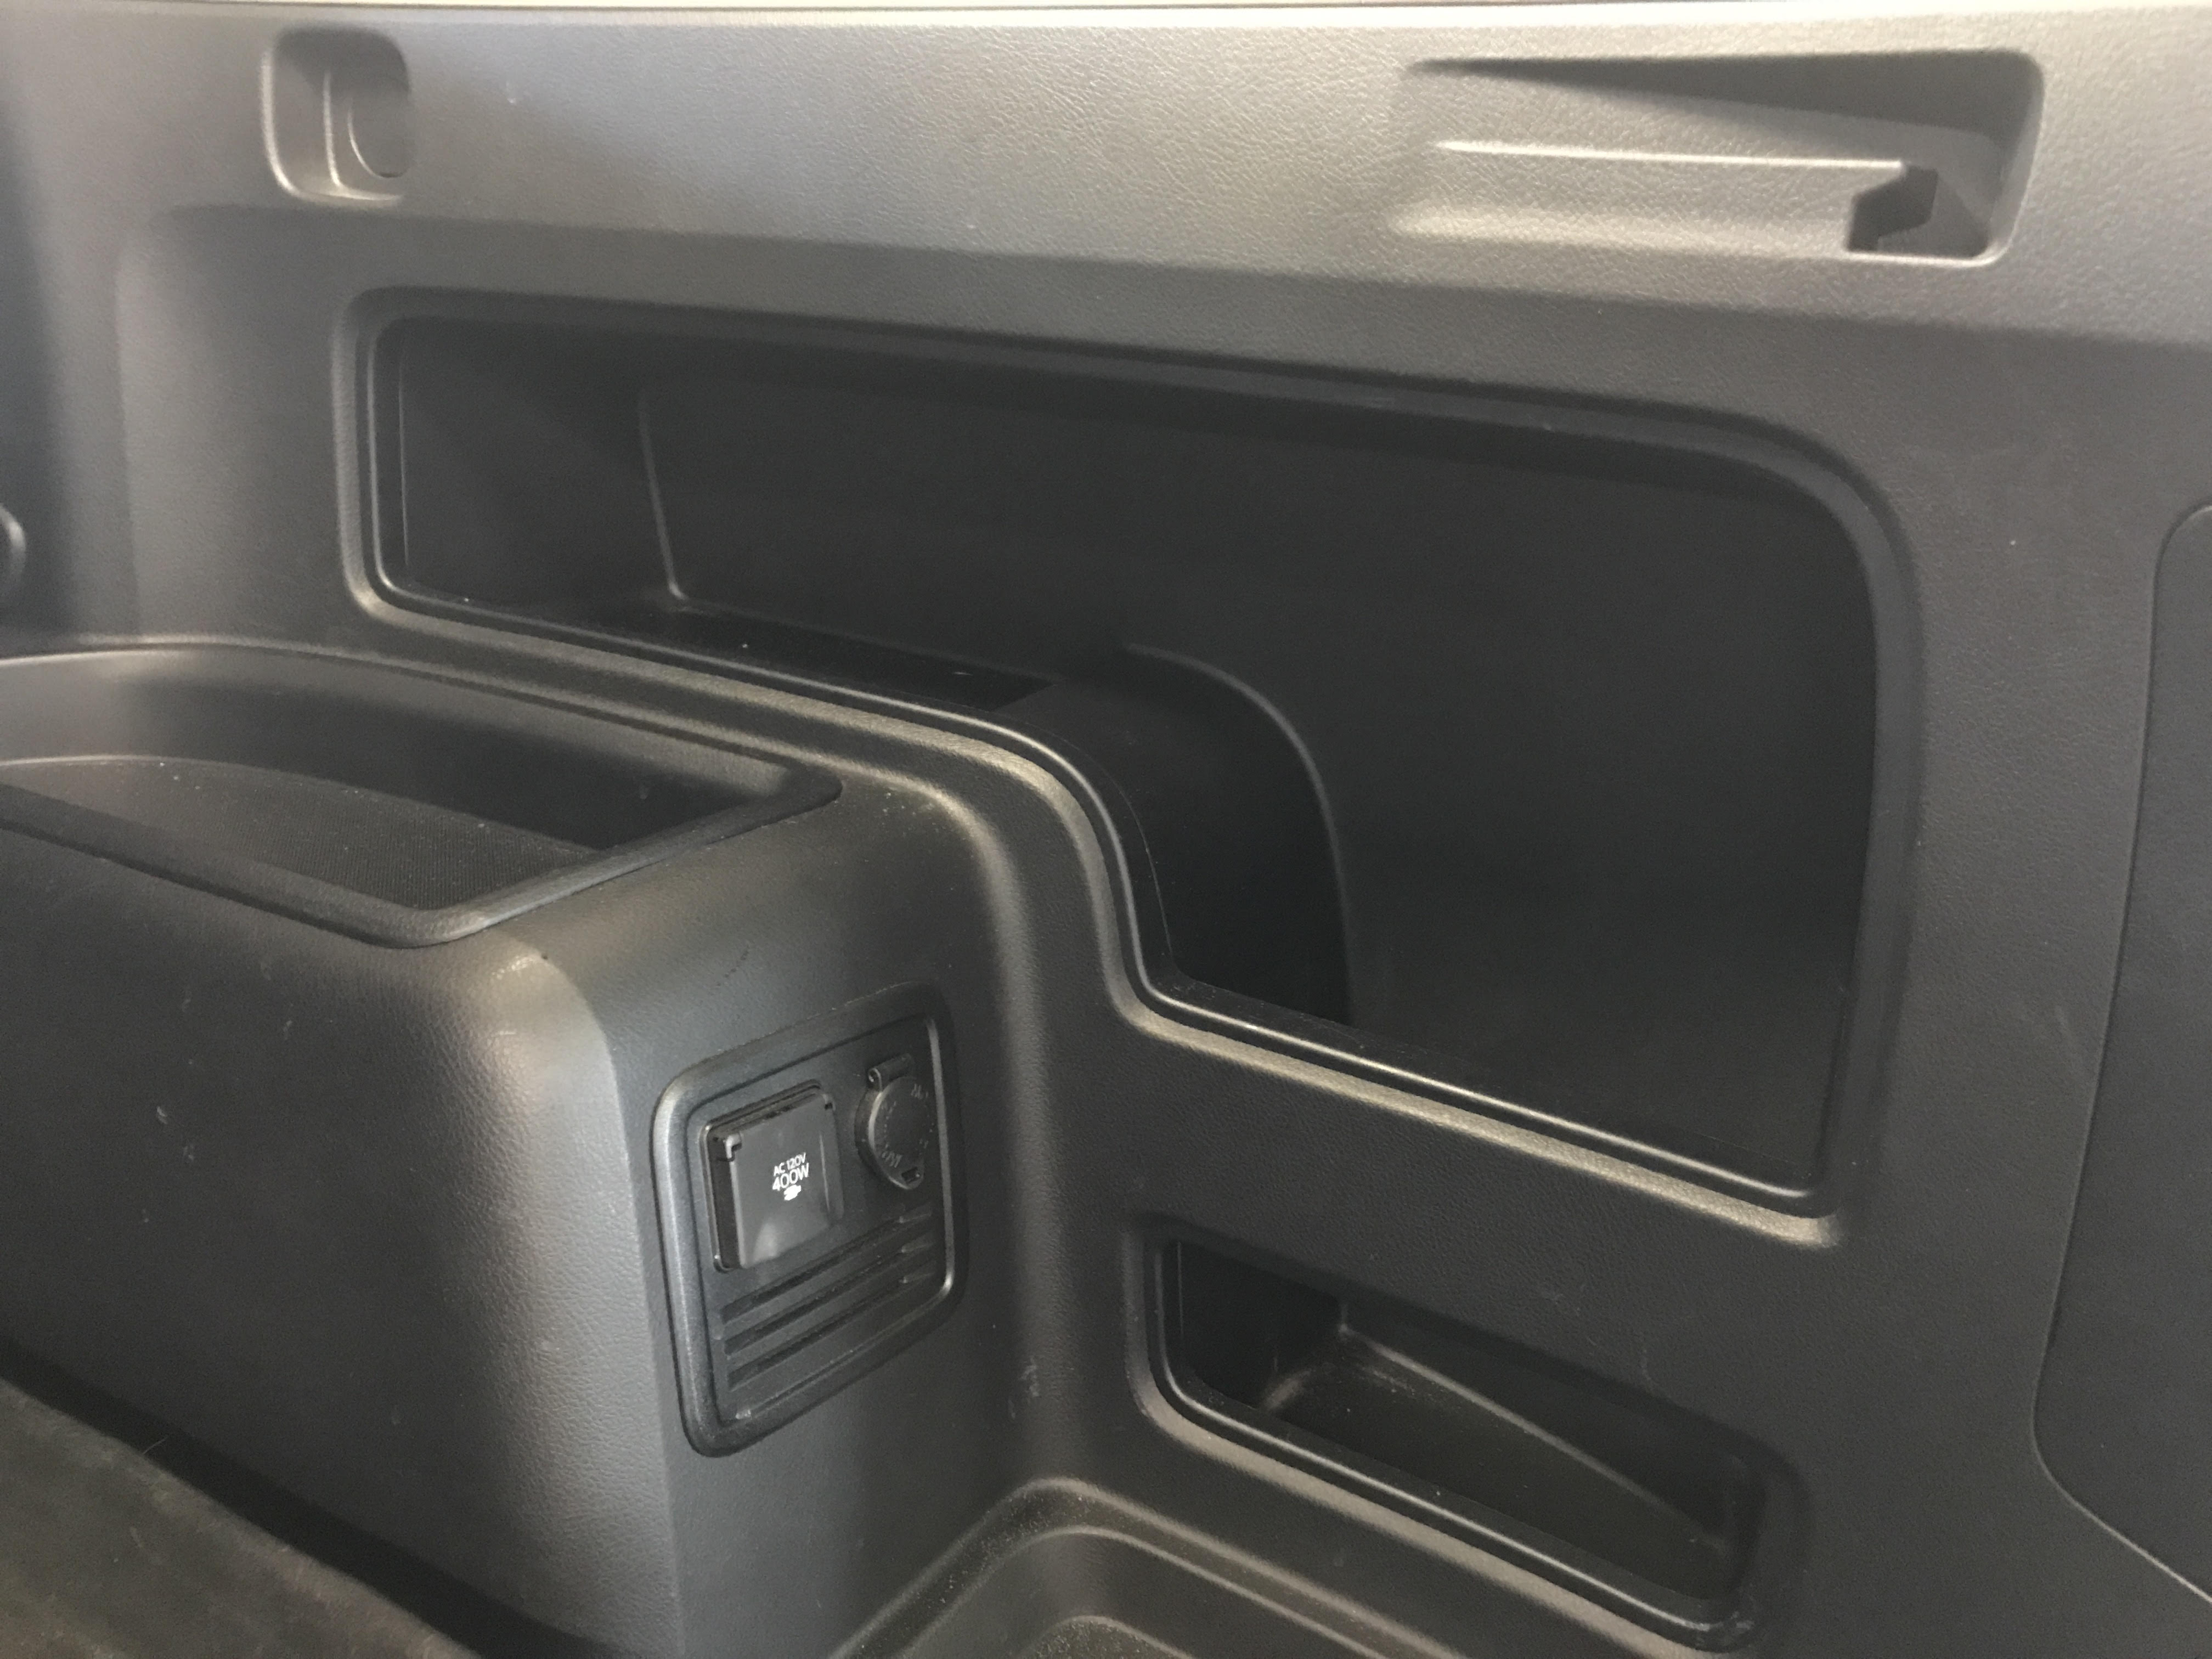 2017 Toyota 4runner >> 2010-2018 Toyota 4Runner Phantom Fit Sub Enclosure